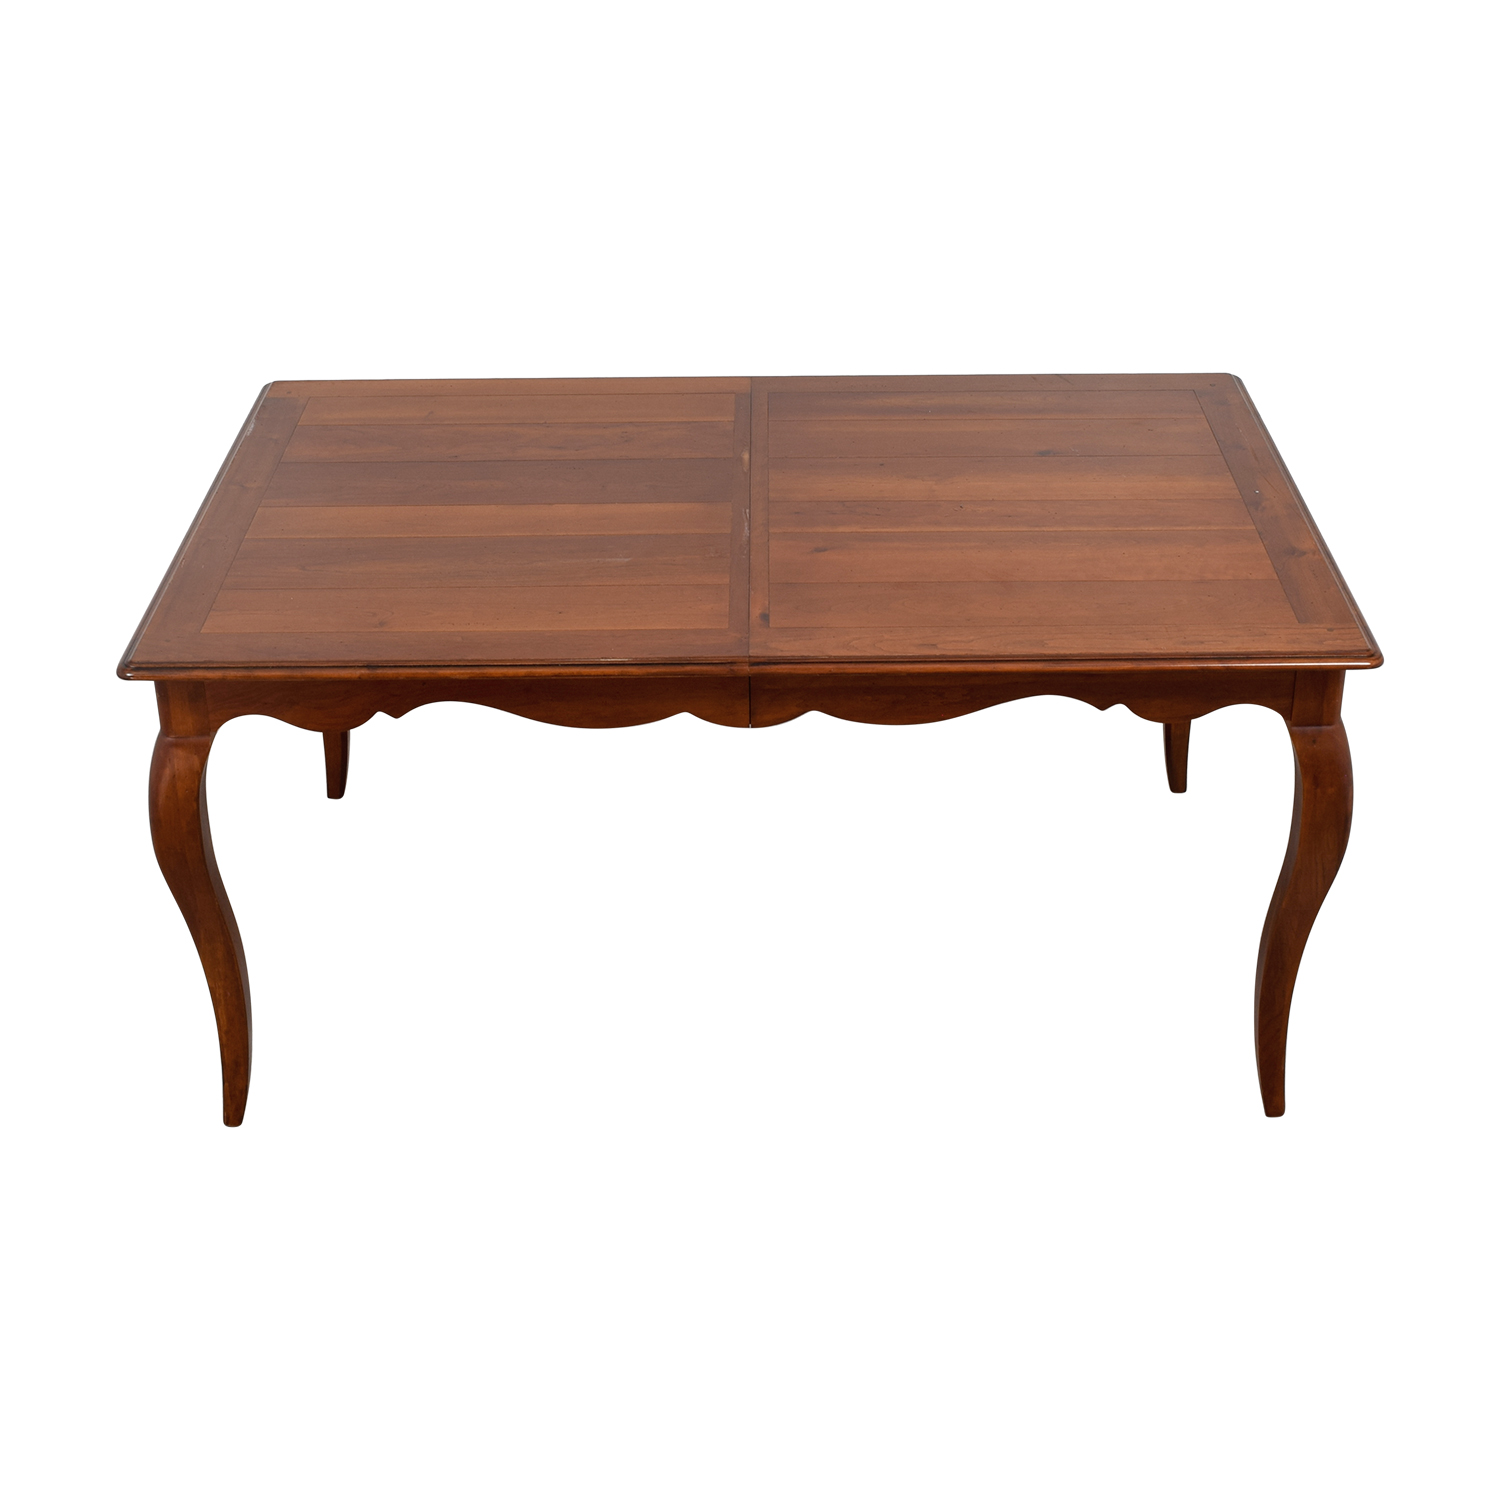 Ethan Allen Ethan Allen Juliette Wood Dovetailed Dining Table coupon